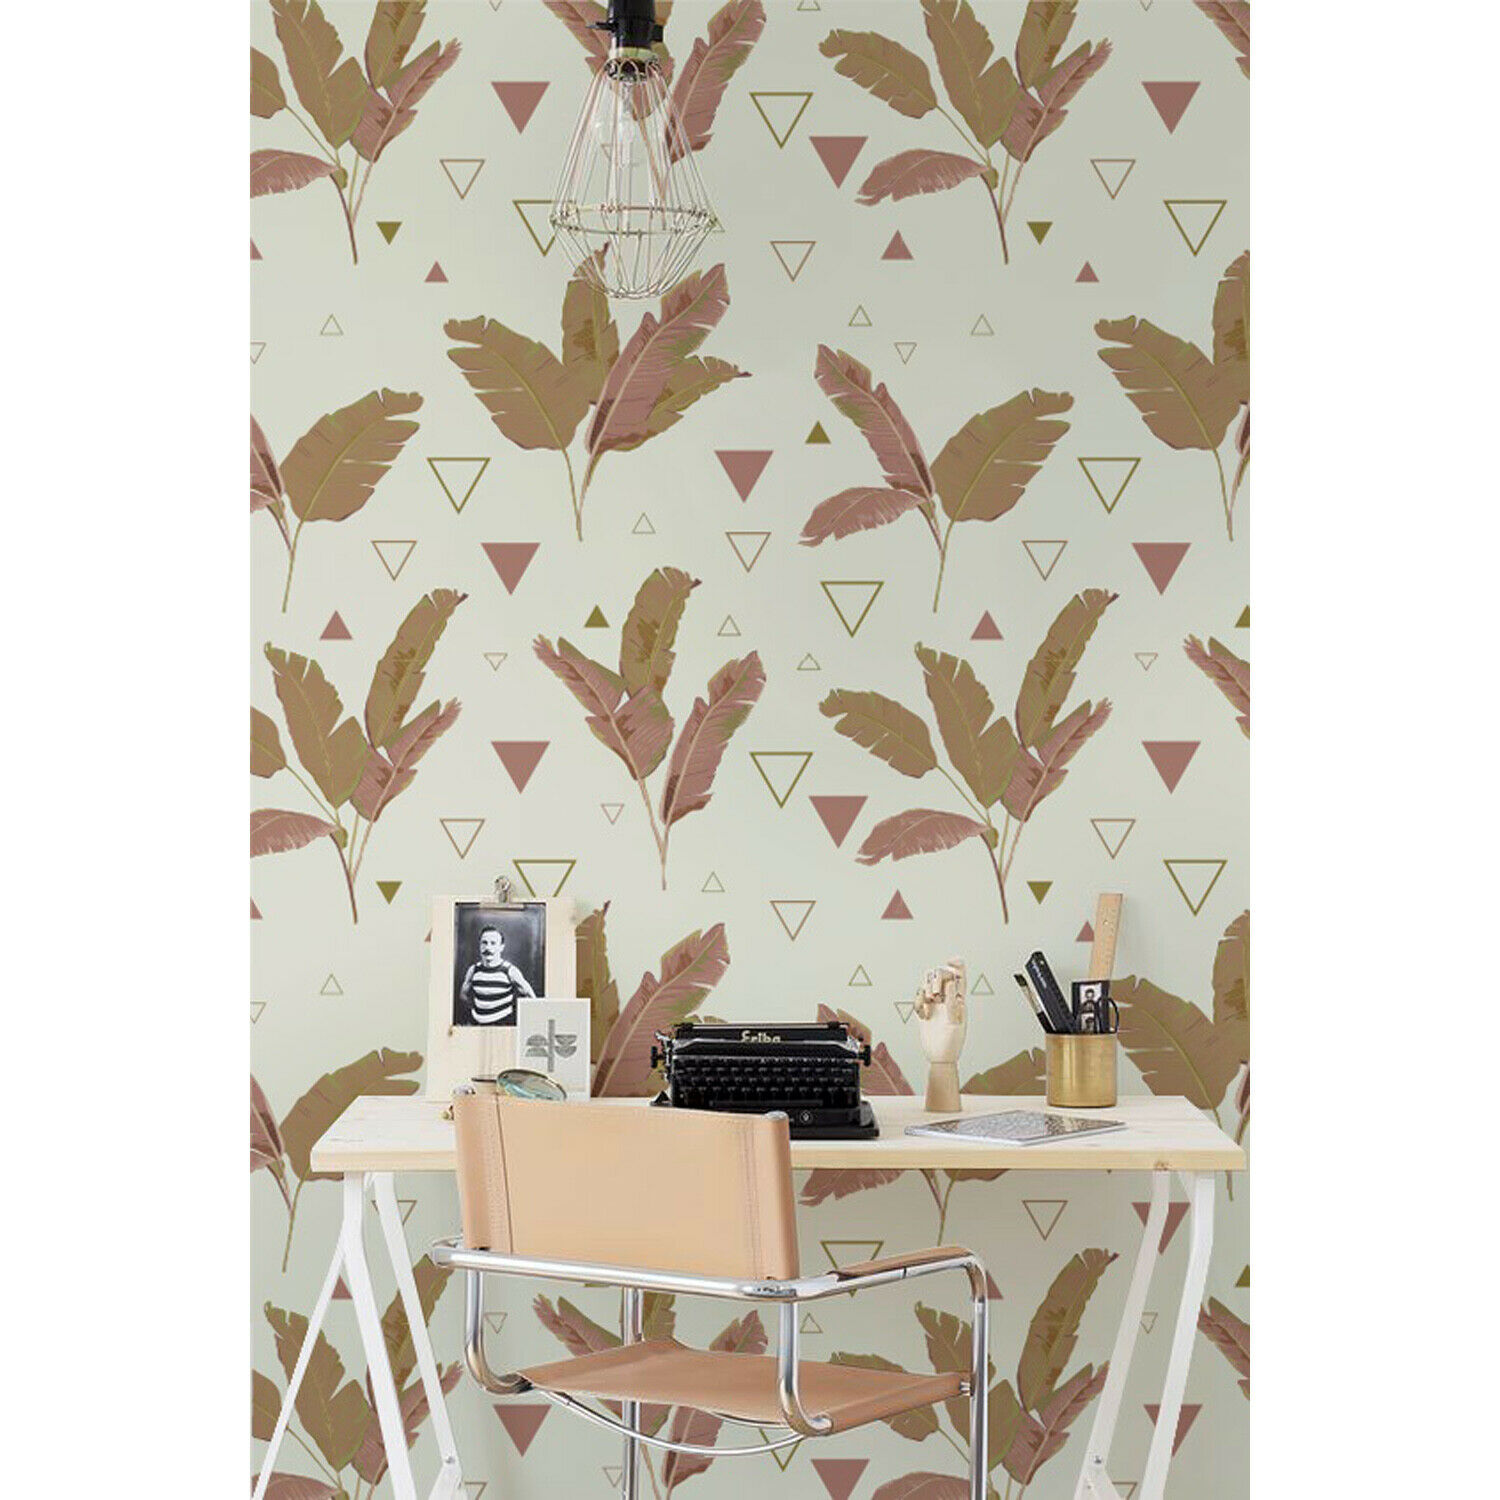 Palms Triangles Non-woven wallpaper cover Easy on Home wall mural Decal